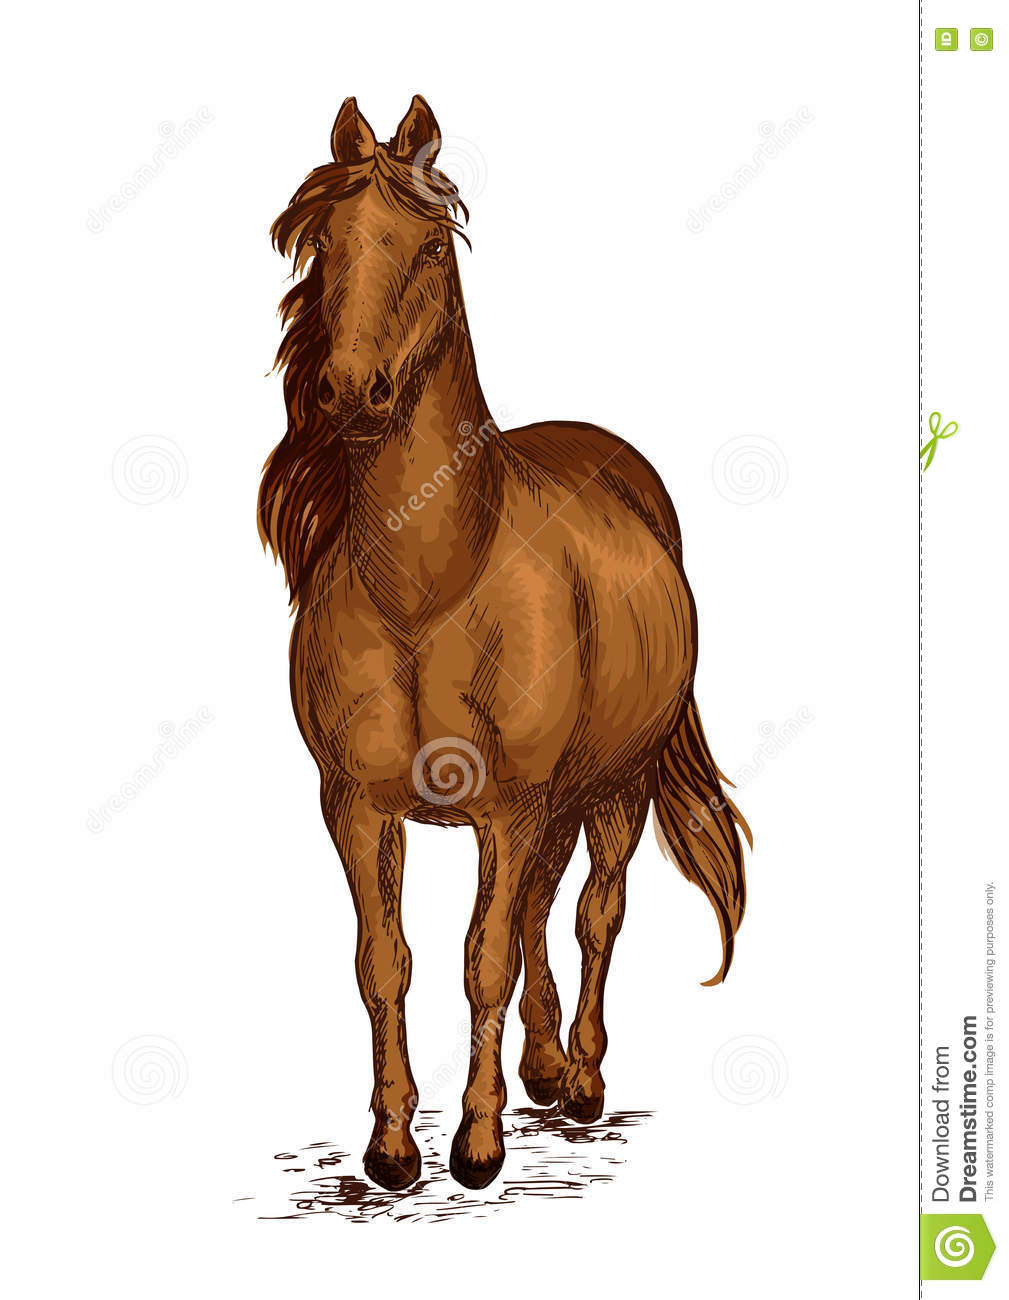 Strong Brown Arabian Horse Mustang Portrait Stock Vector Illustration Of Racehorse Animal 81955765